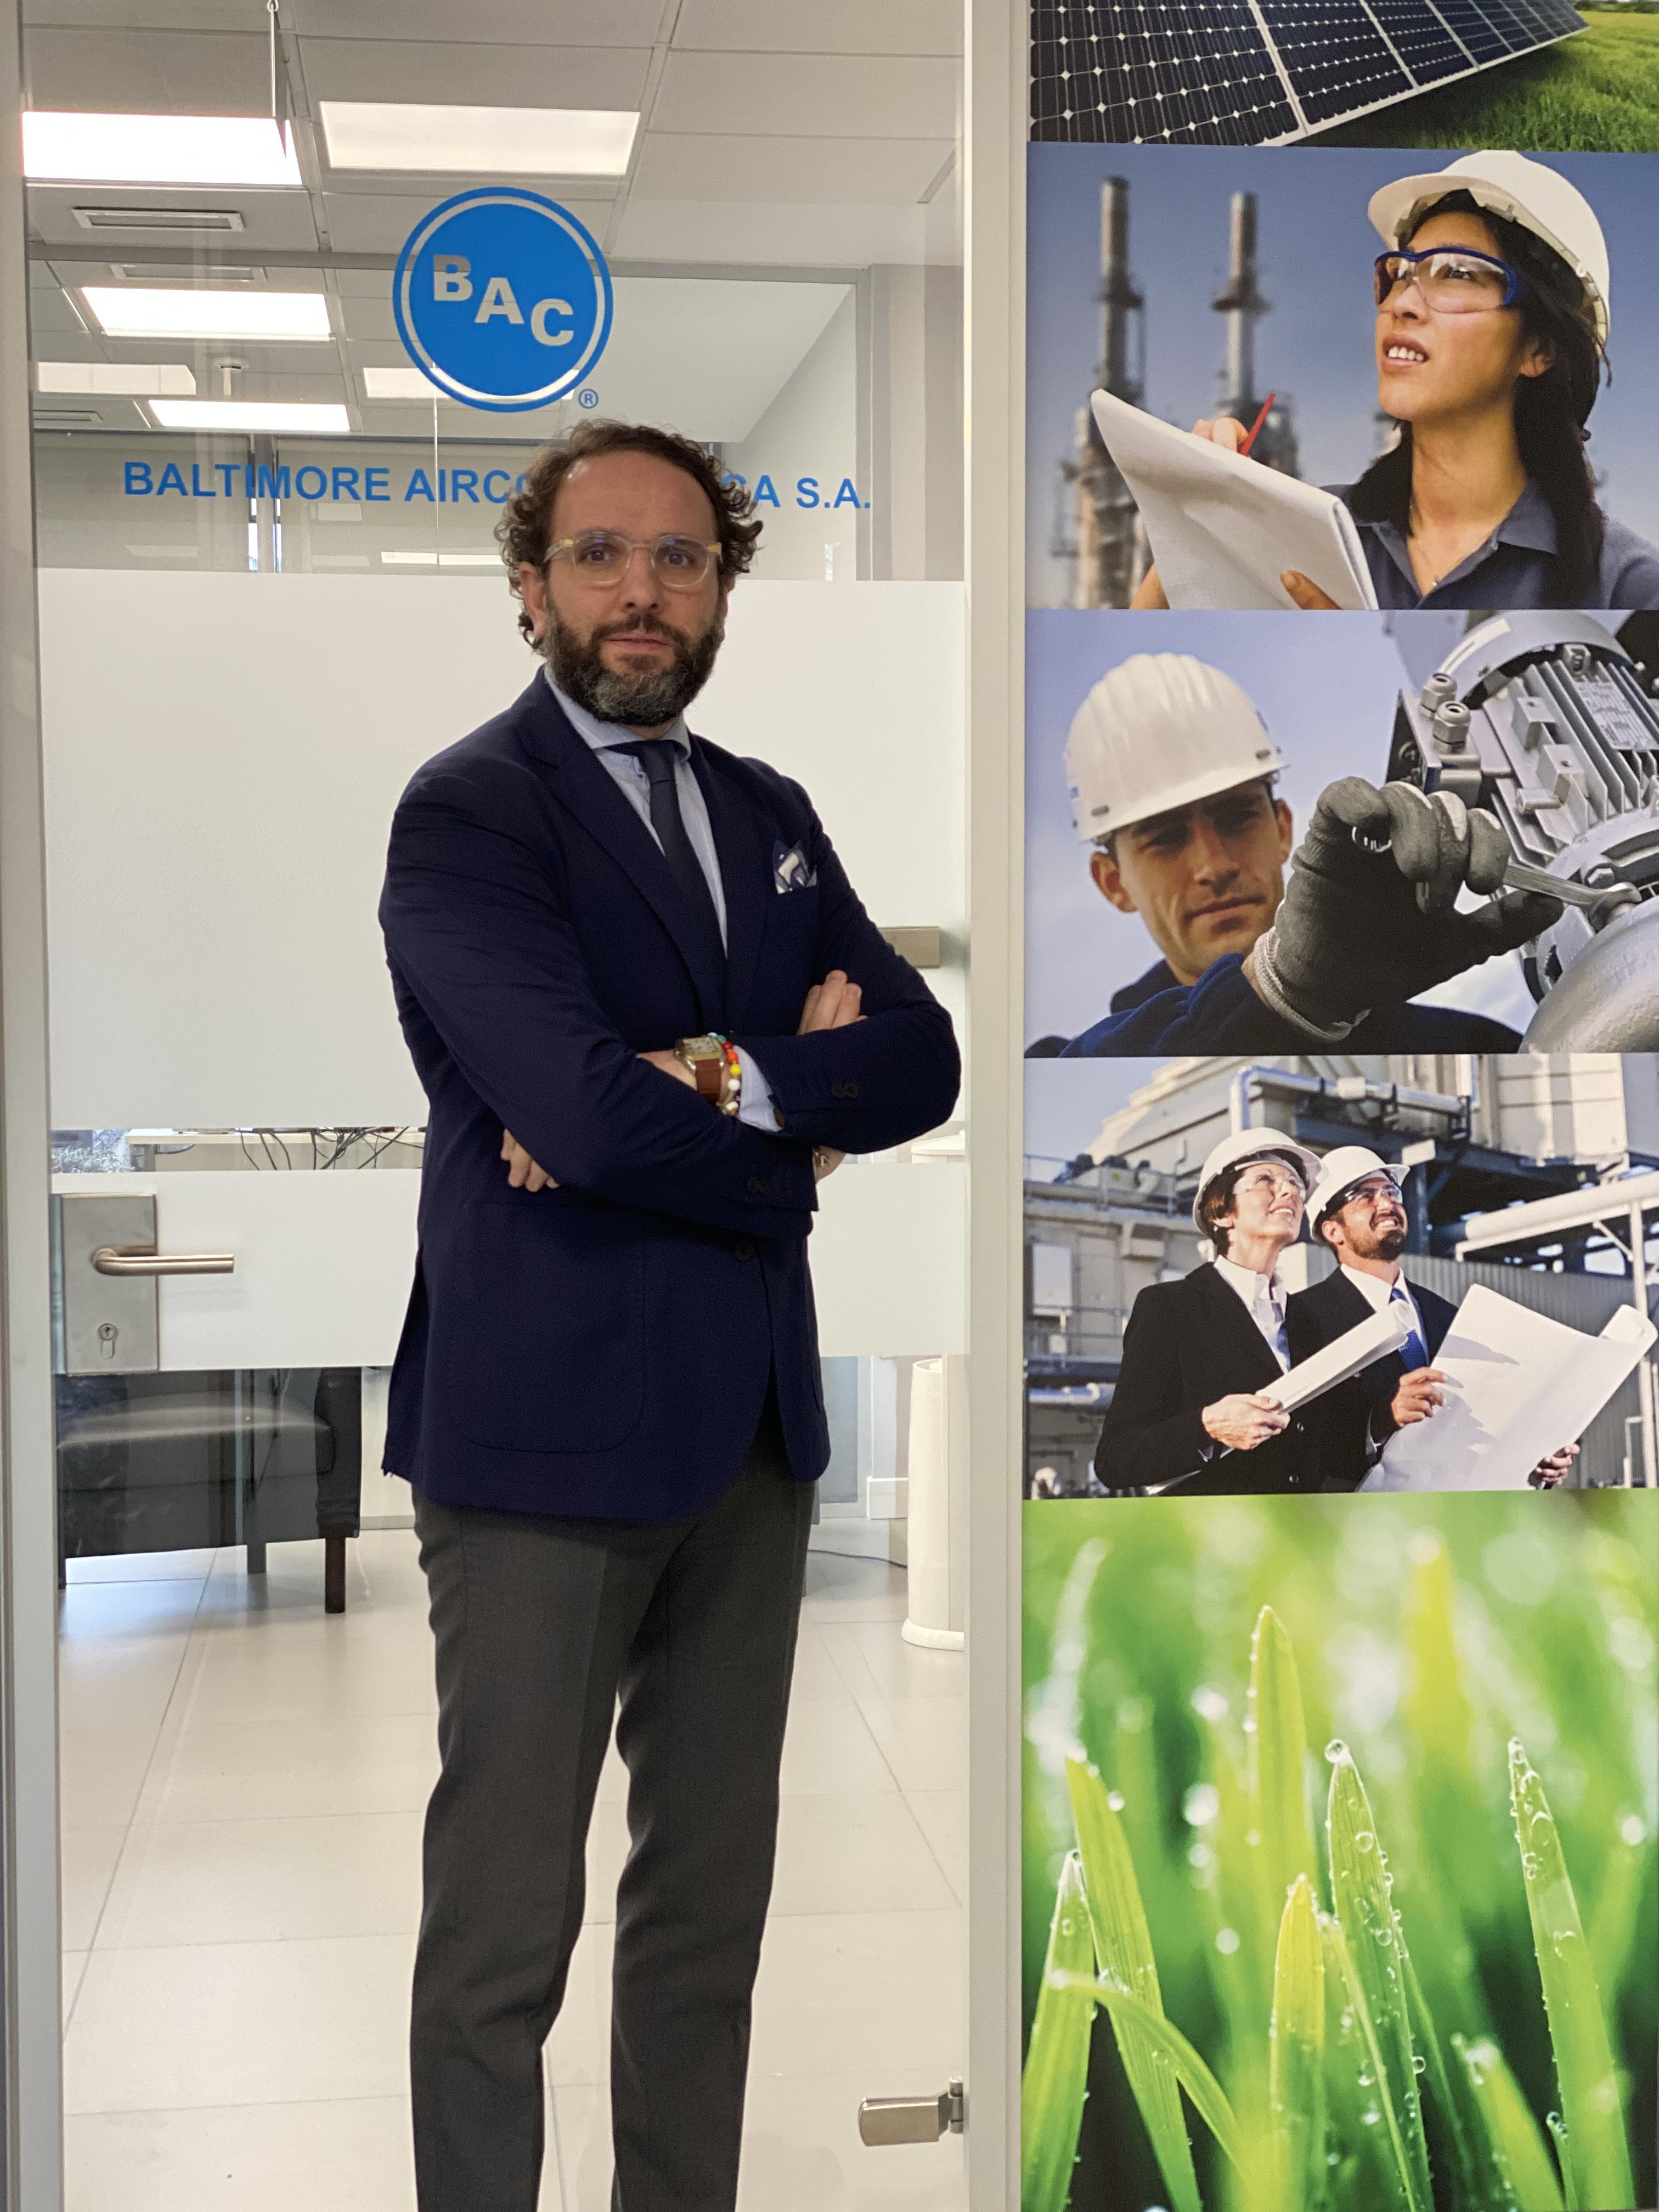 Entrevista con Juan Ramon Castejon Lopez, General Manager – Spain & Portugal de Baltimore Aircoil Ibérica S.A., Spain